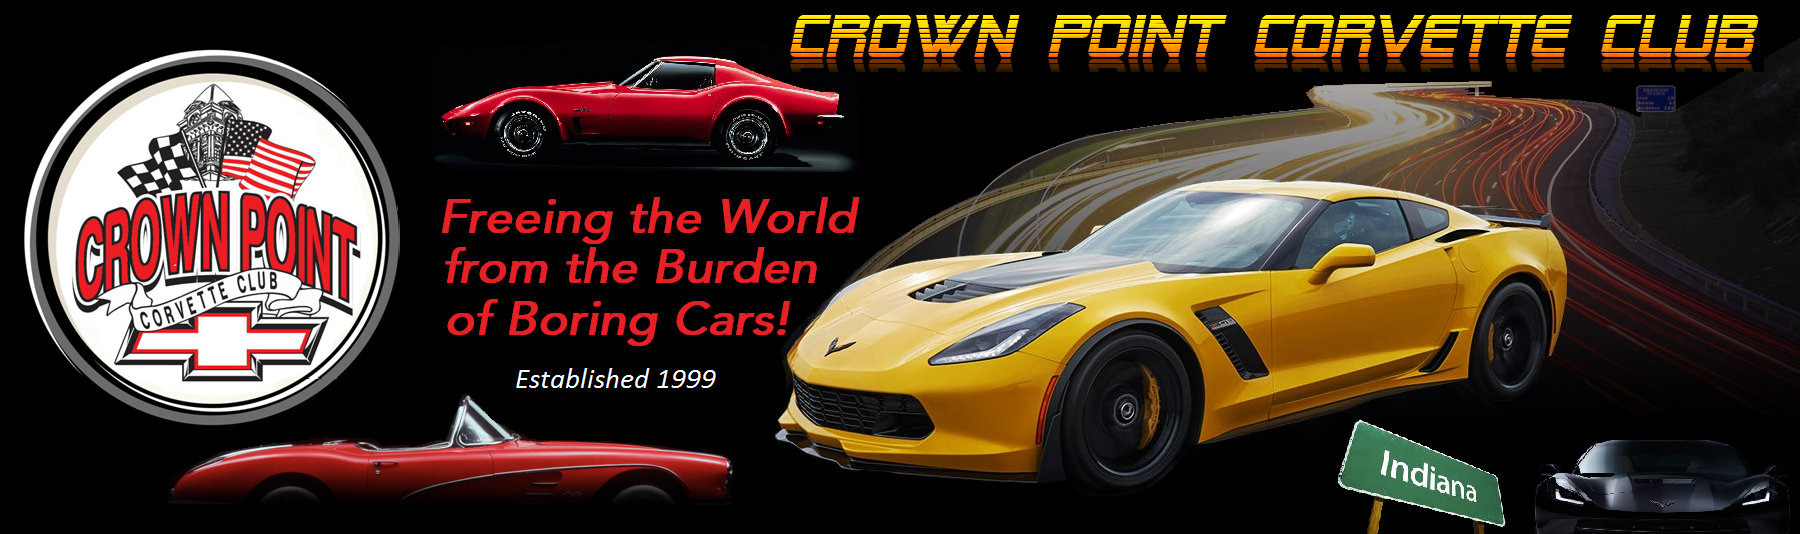 About | Crown Point Corvette Club